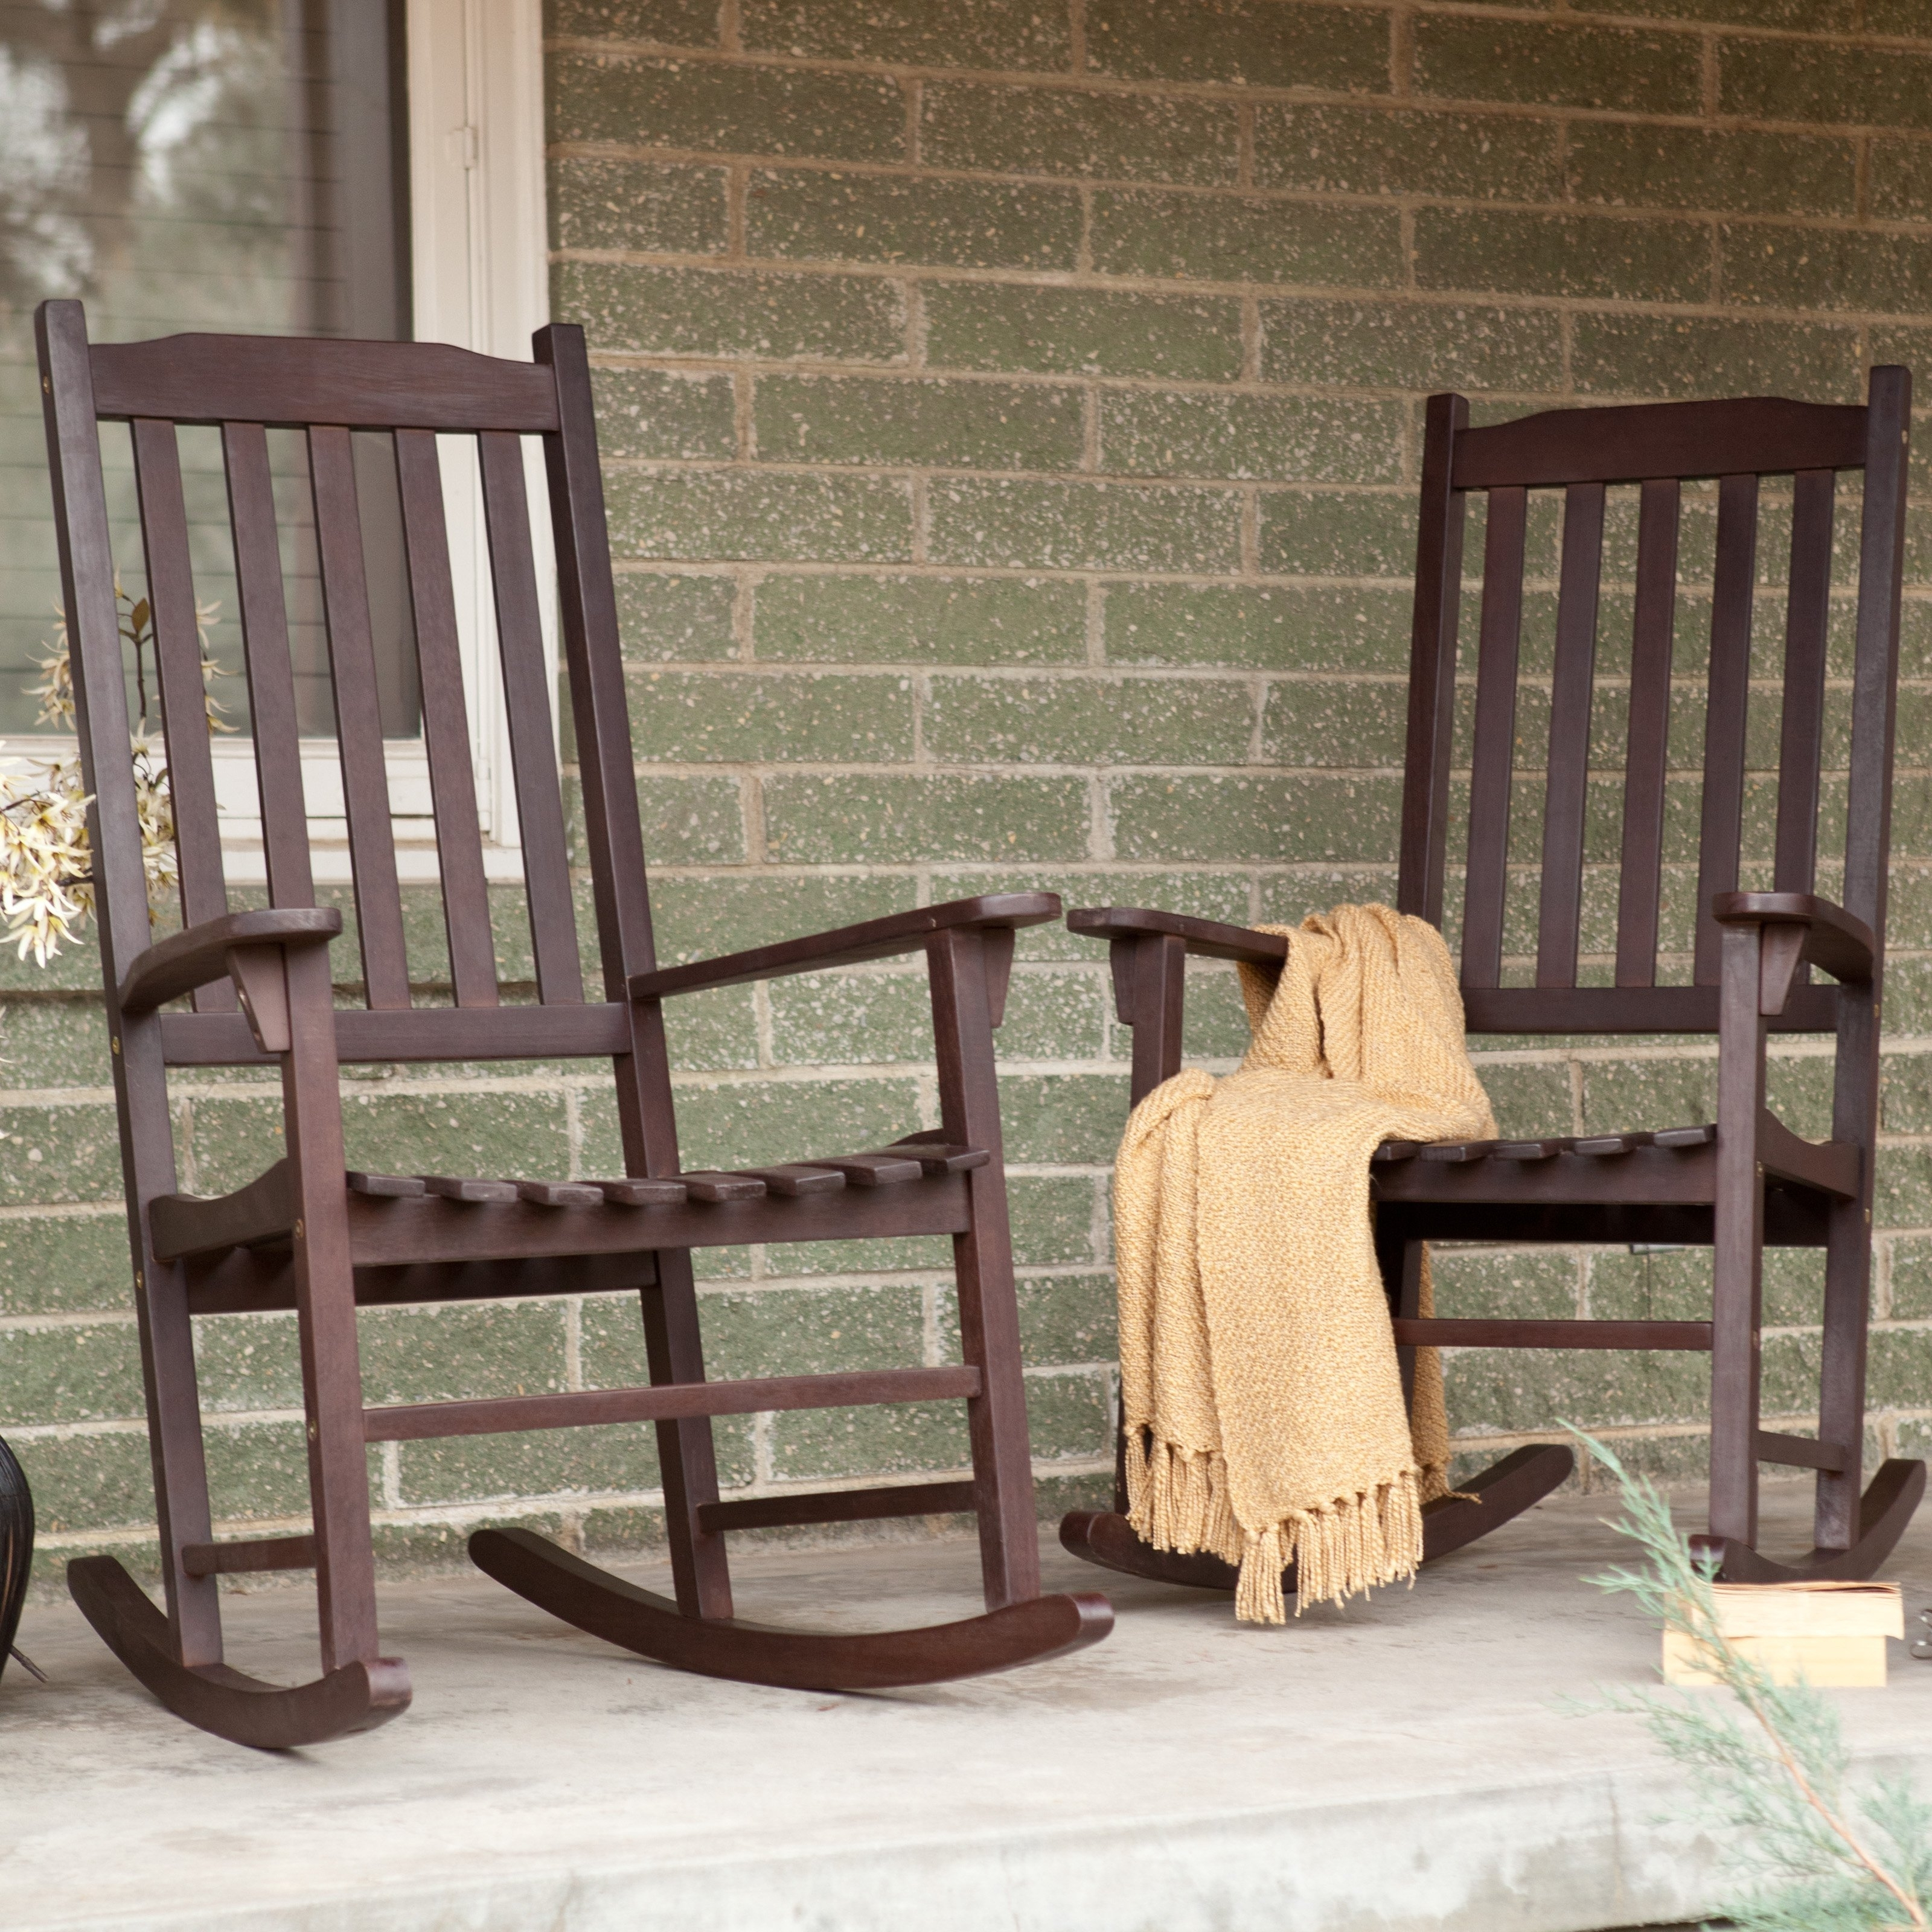 Widely Used How To Choose Comfortable Outdoor Rocking Chairs – Yonohomedesign Inside Unique Outdoor Rocking Chairs (View 9 of 15)